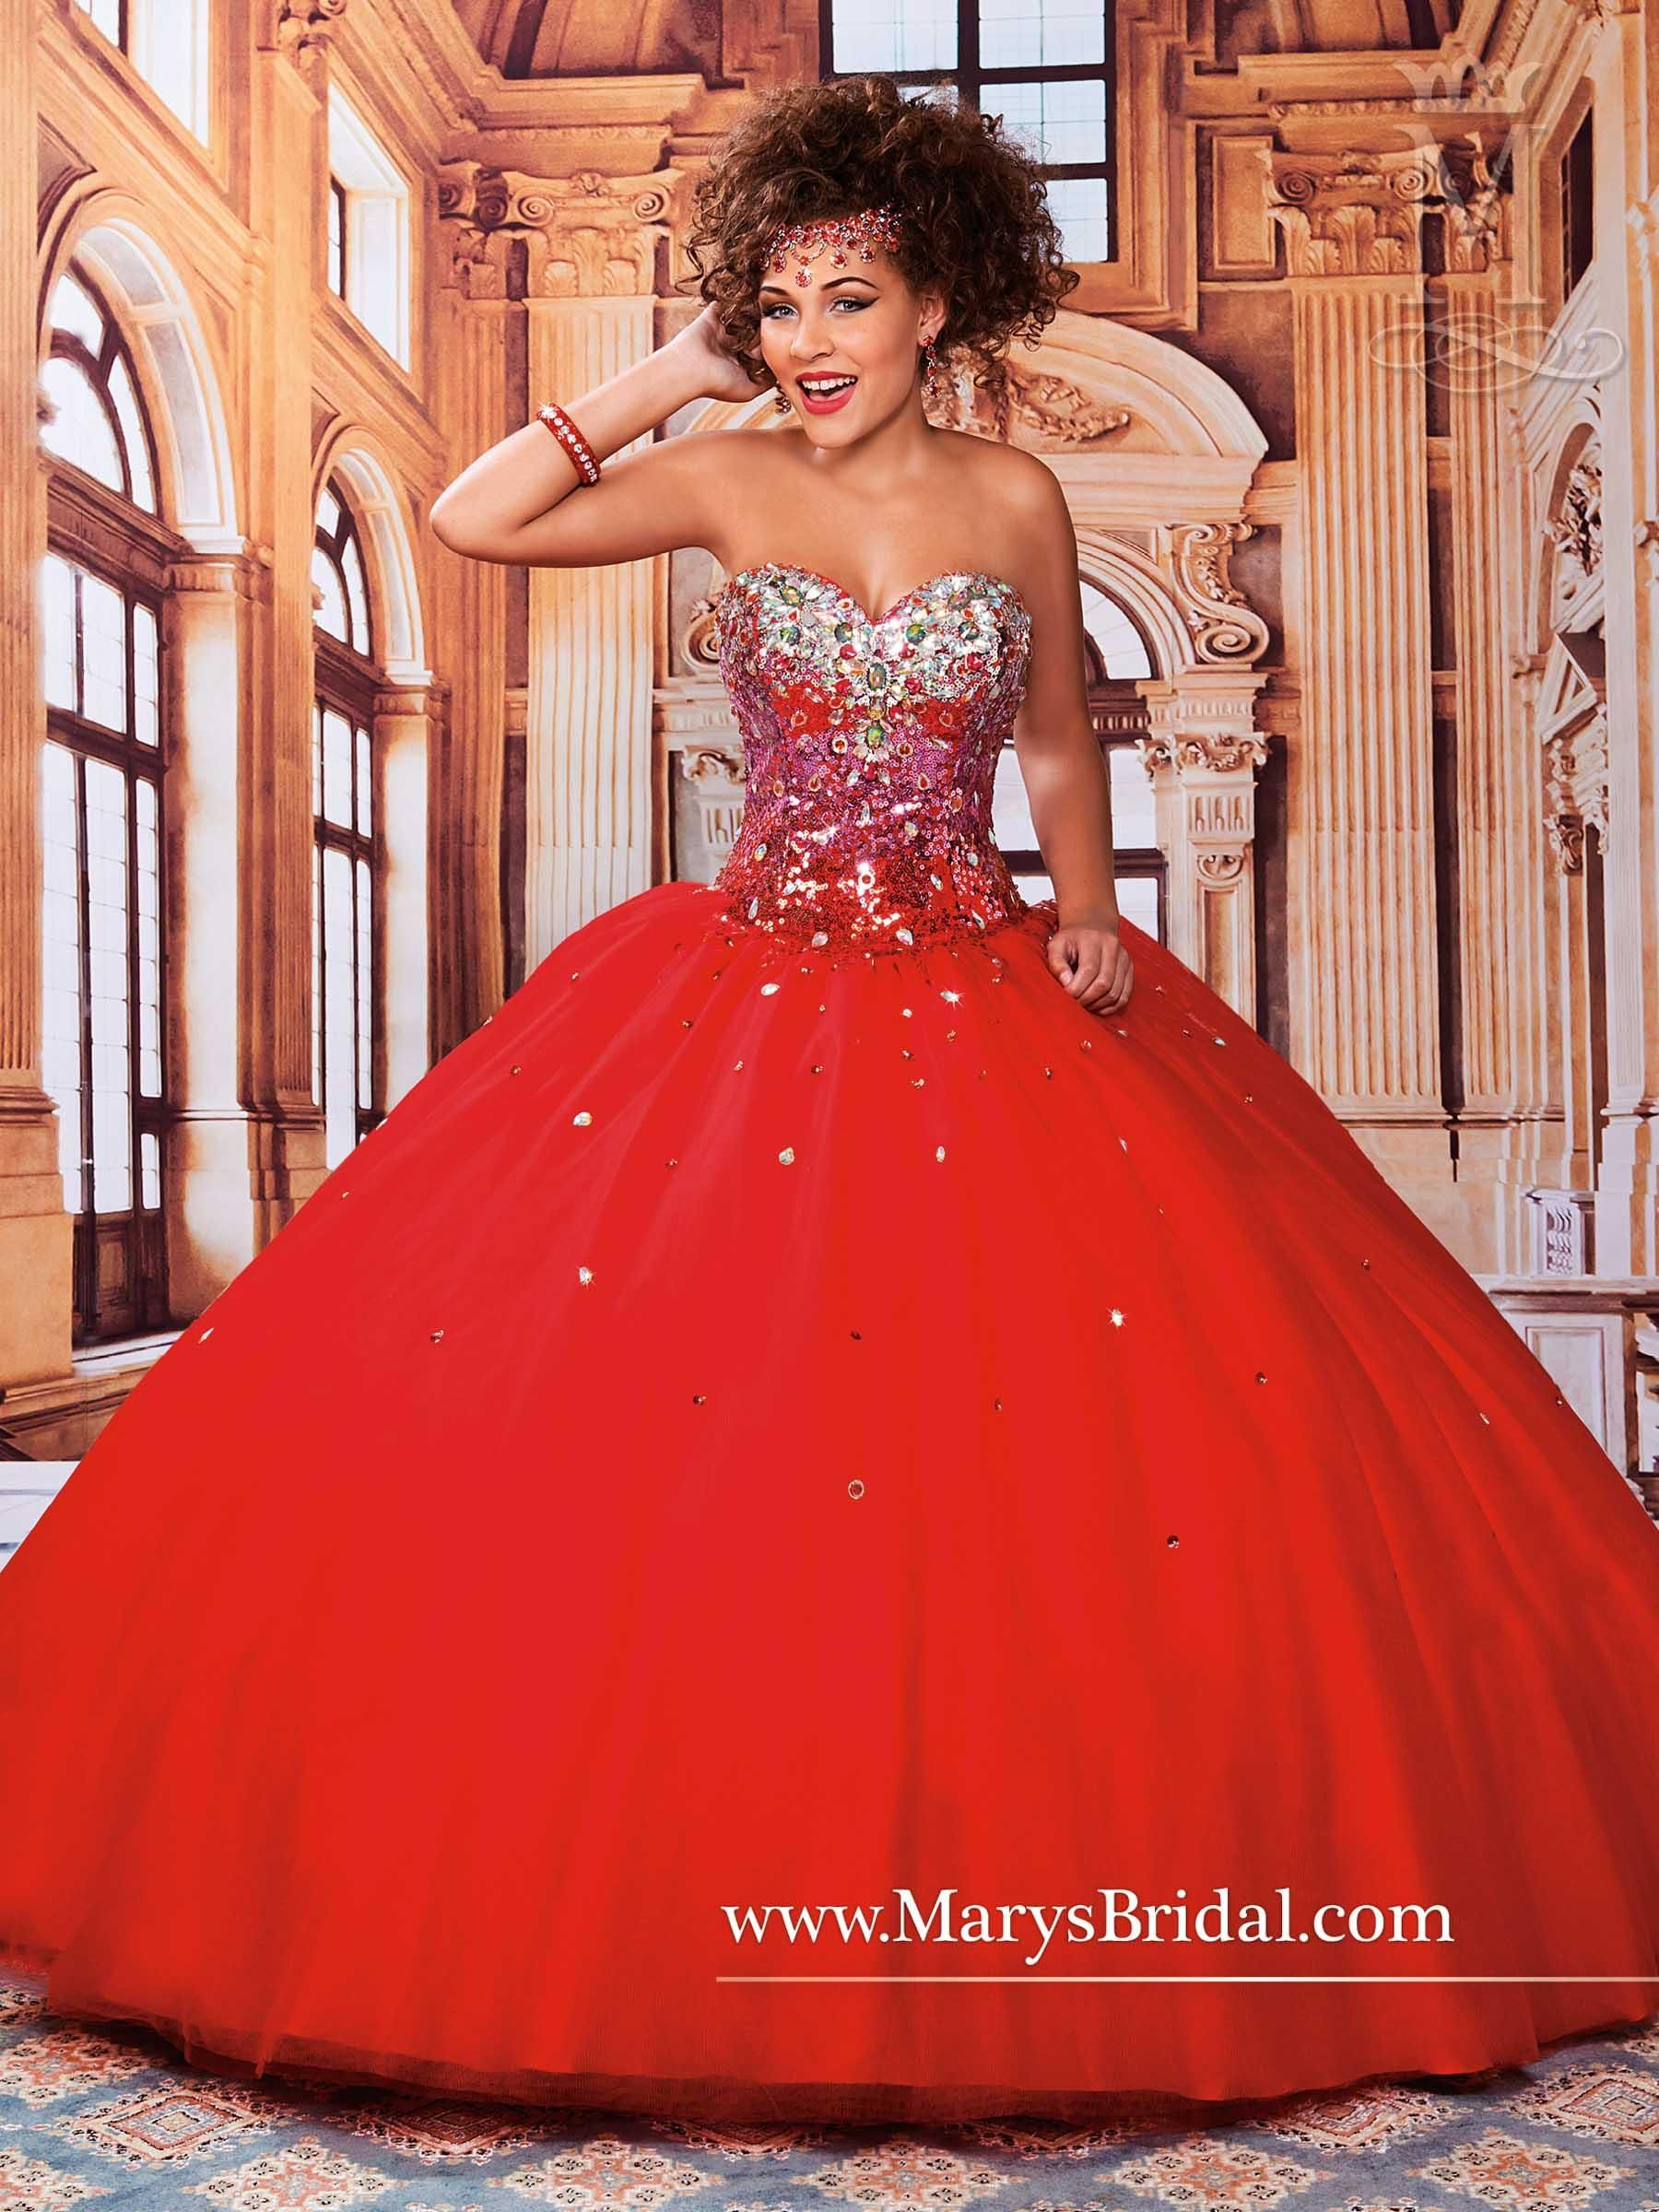 0986b38dde Mary s Purple Quinceanera Dresses 2015 Fall Sweetheart Neck Rhinestones  Sequins Tulle Ball Gown Prom Gowns with Lace Up Back Custom Made from ...